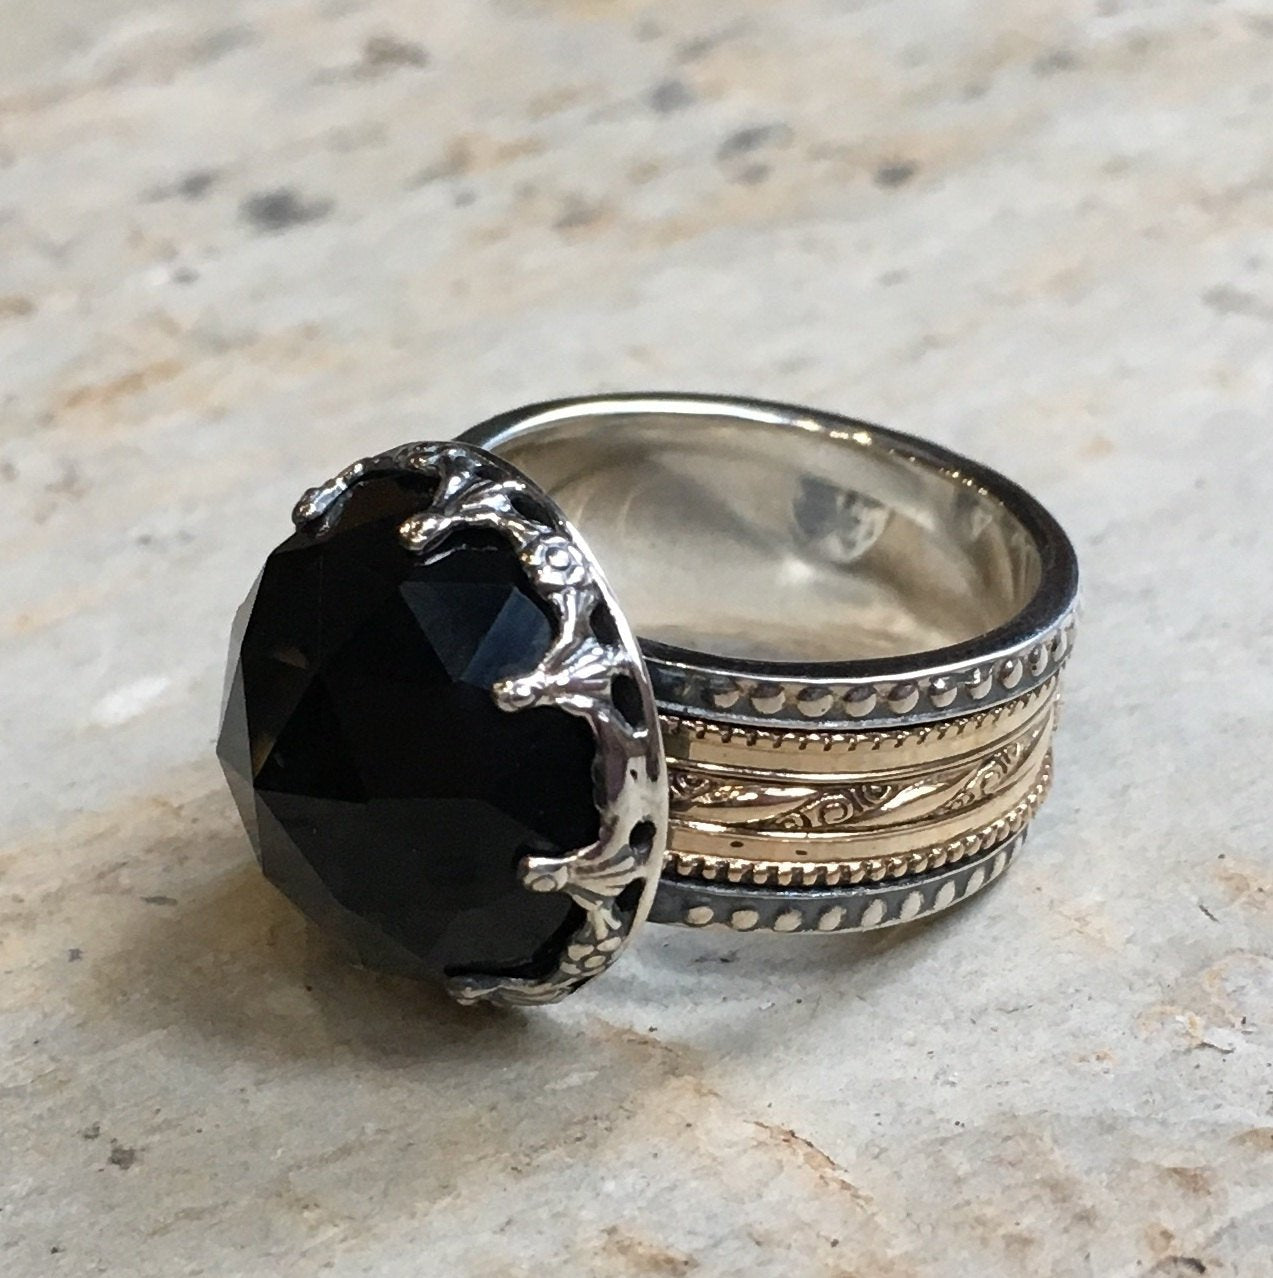 Silver gold ring, Onyx ring, wedding band, gypsy ring, spinner ring, meditation ring, two tone band,  filigree ring - Into The Mist R2305-1